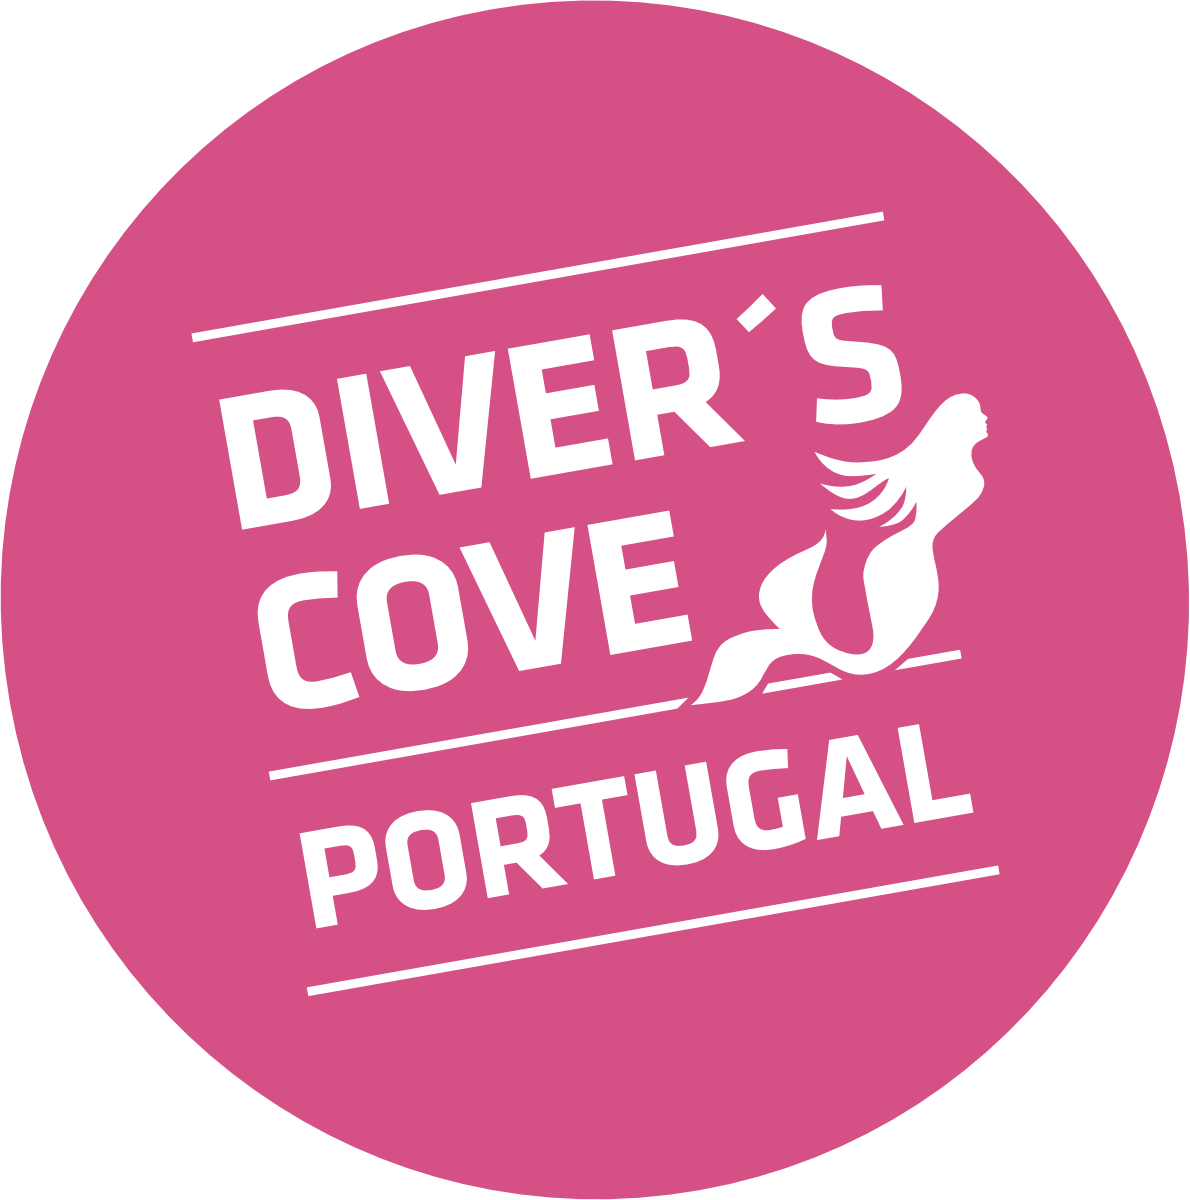 Divers Cove Logo